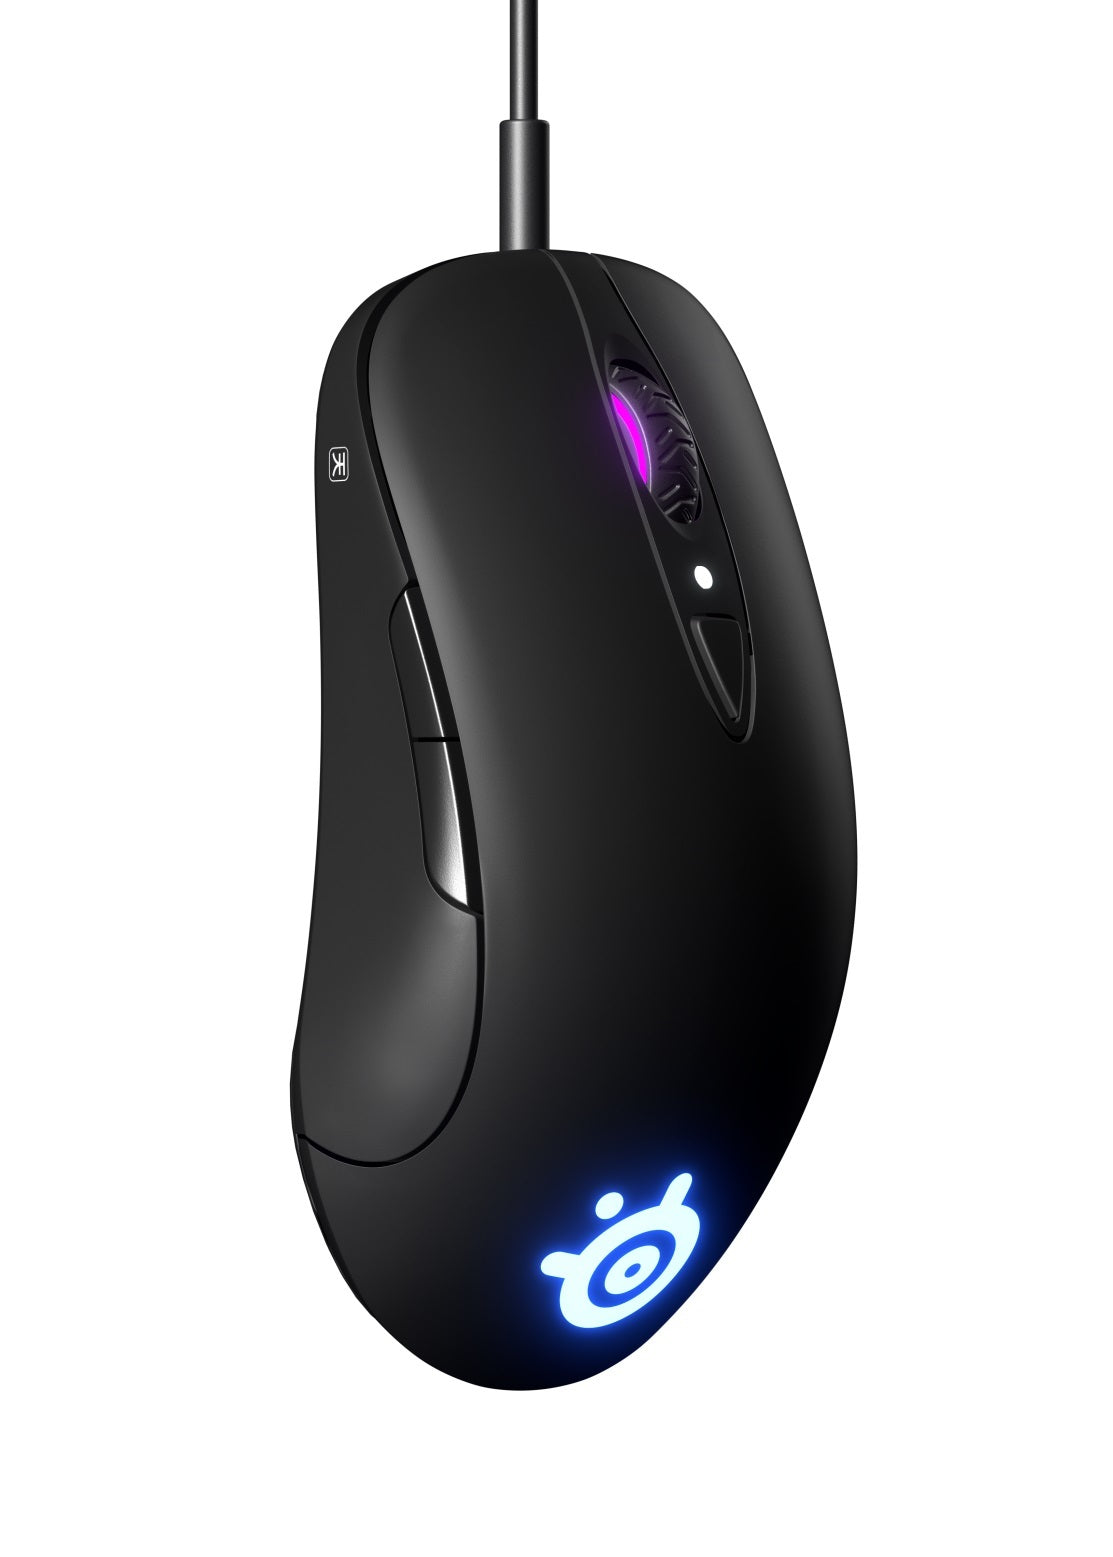 Steelseries Sensei Ten Gaming Mouse - Black - PC Games